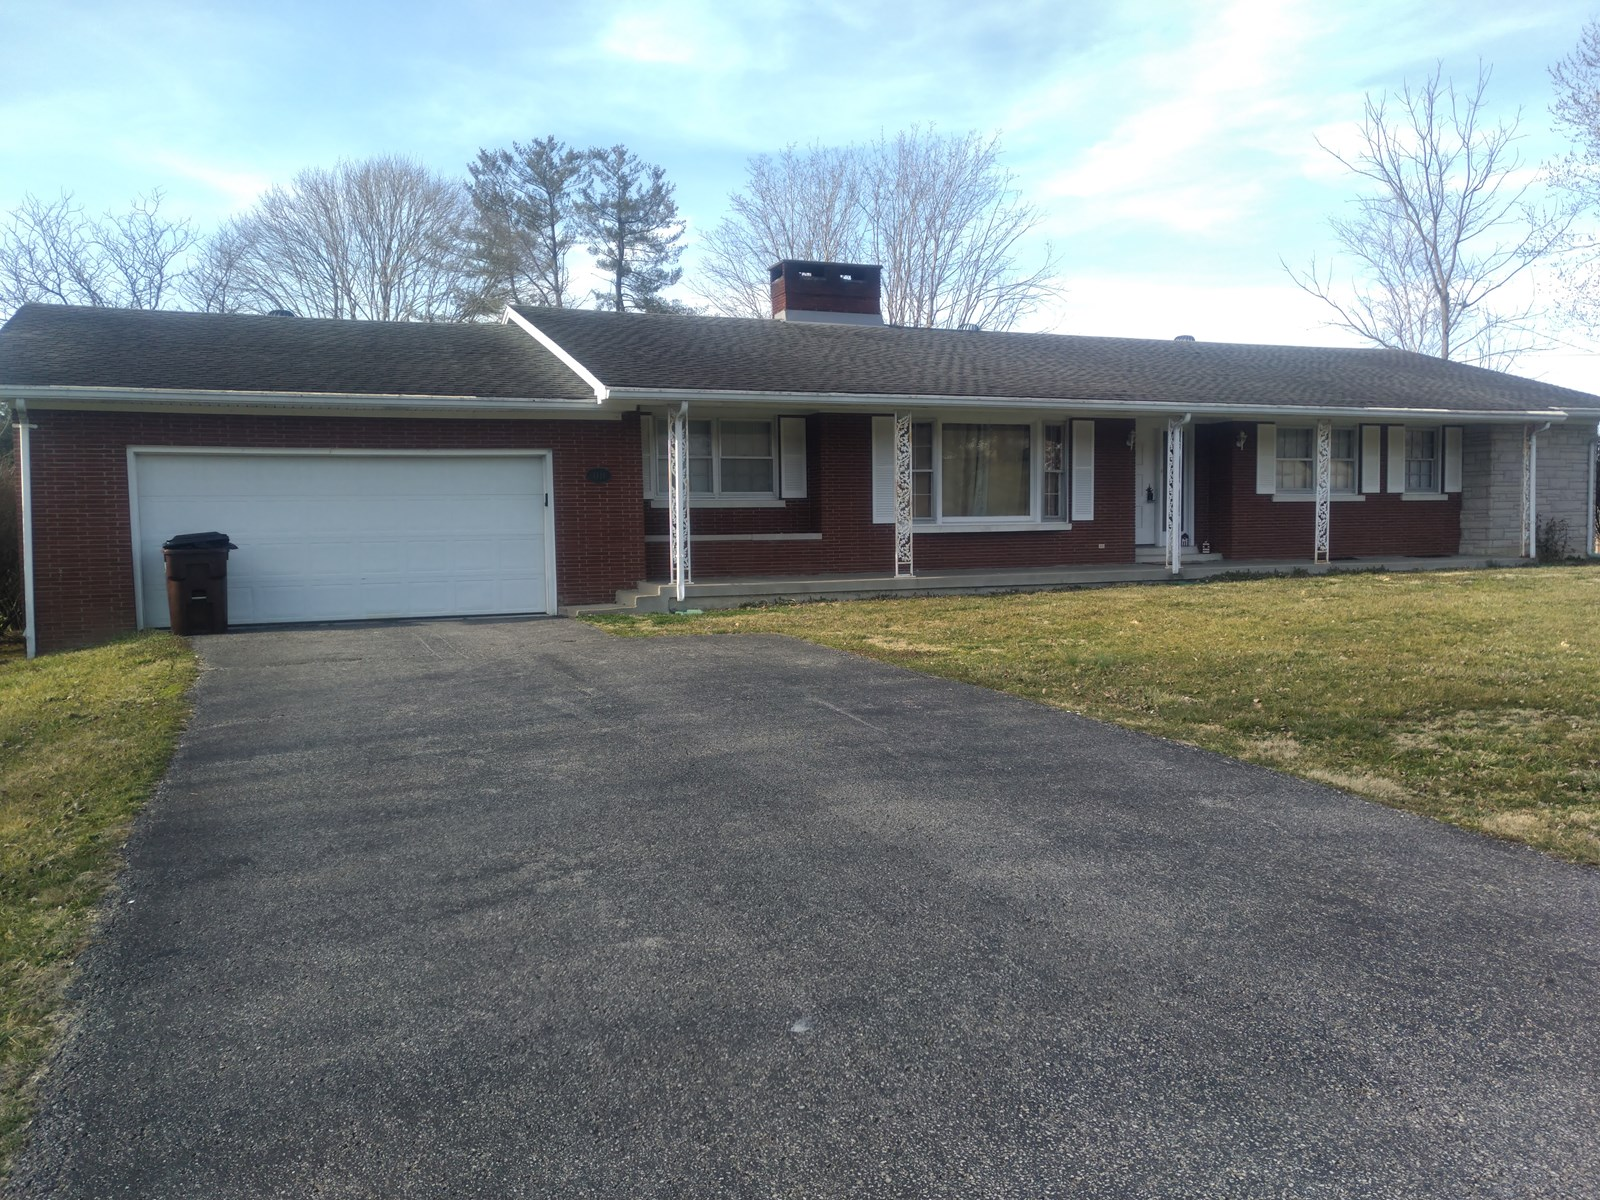 Home for sale in Liberty Kentucky